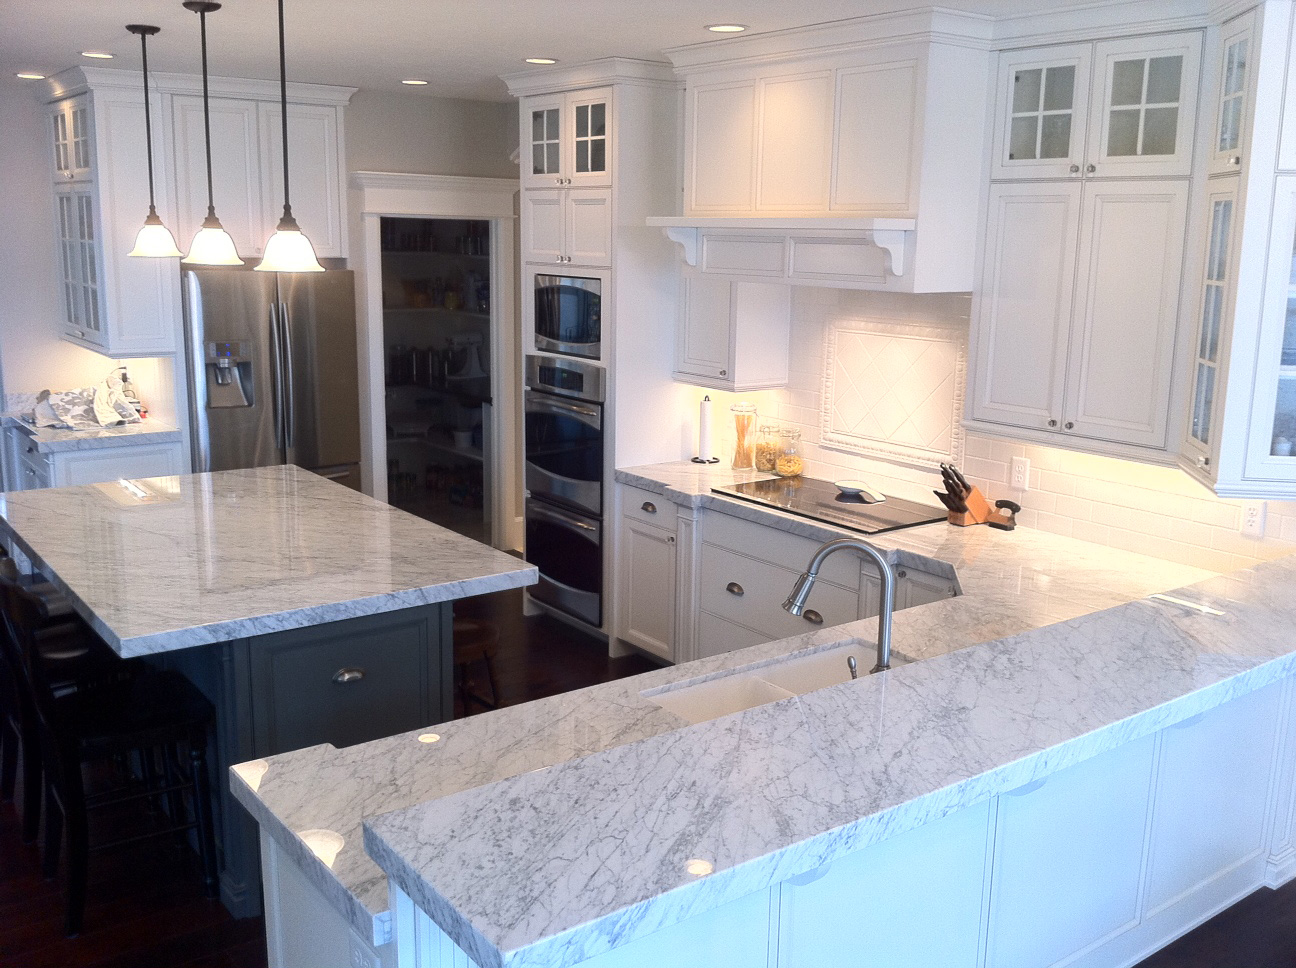 Classic And Timeless The White Carrara Marble Kitchen Whether For